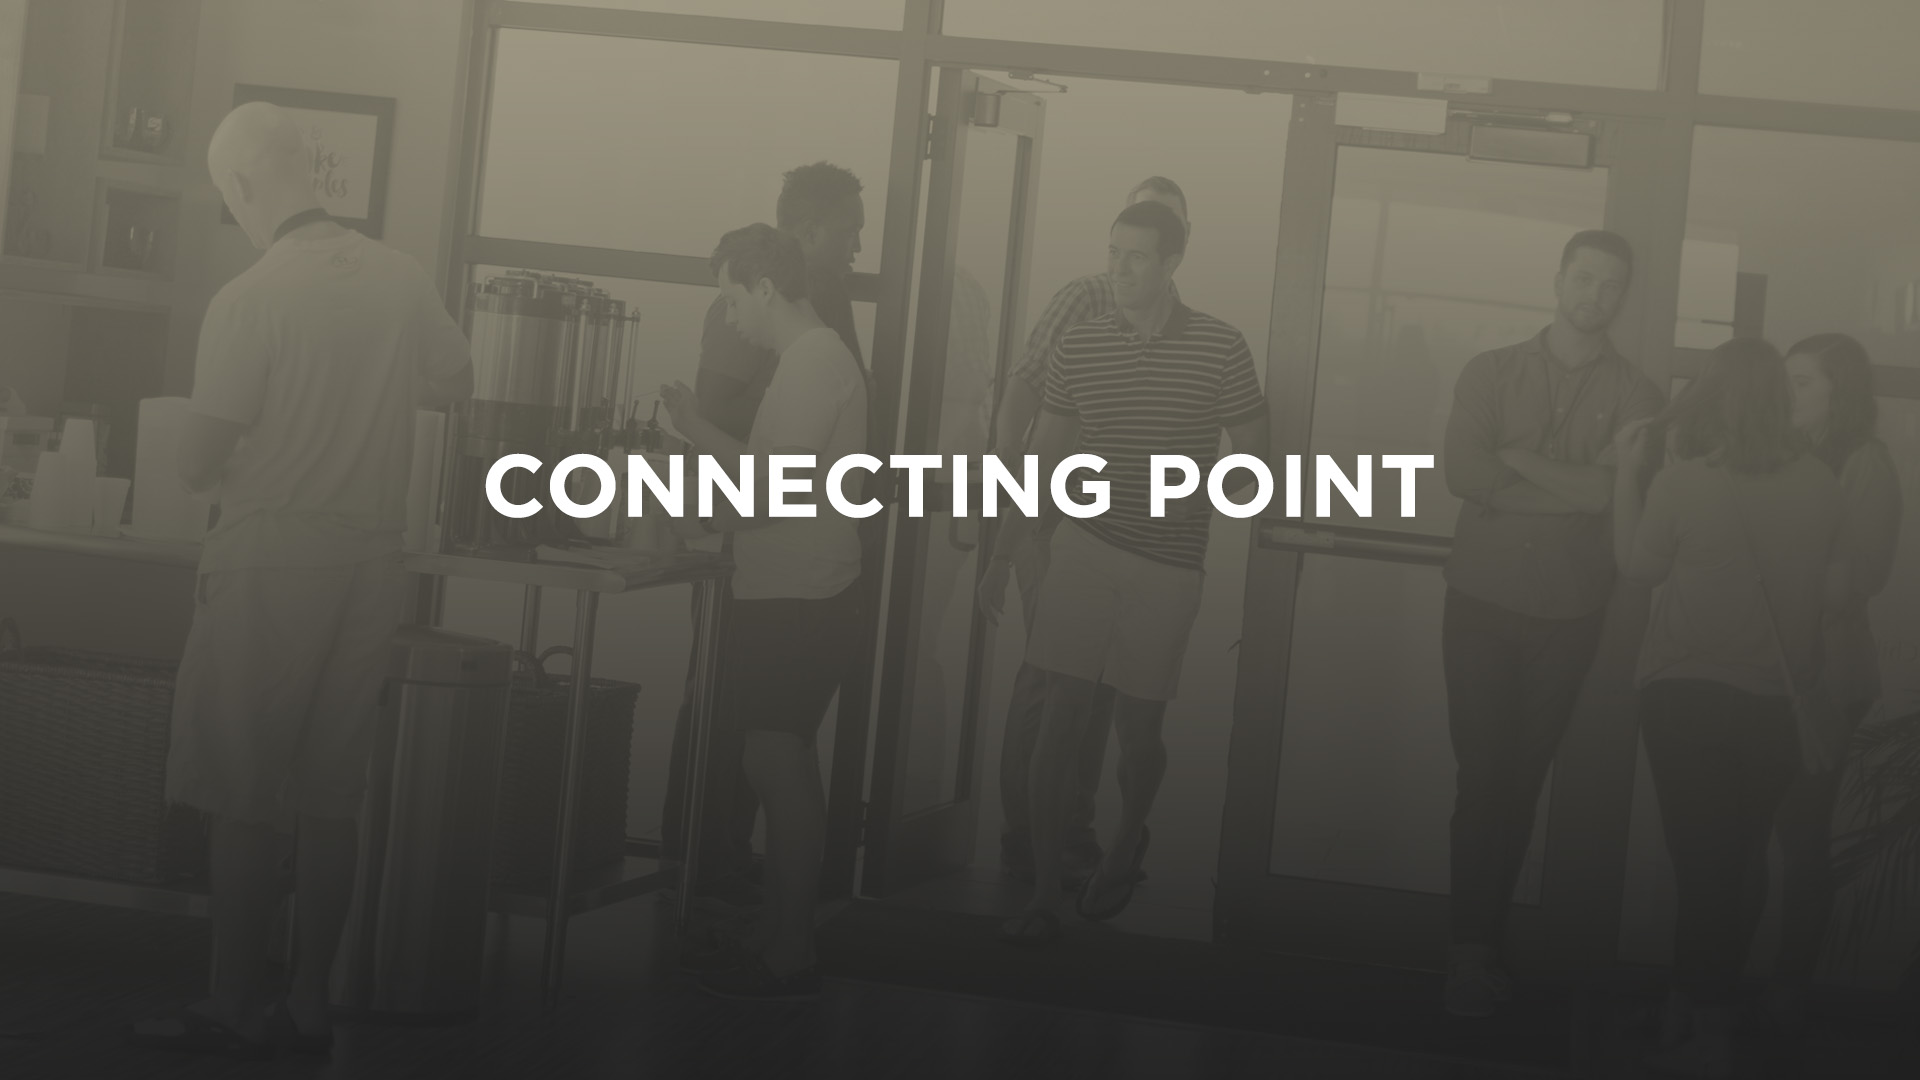 Connecting Point Slide GRAPHIC.jpg